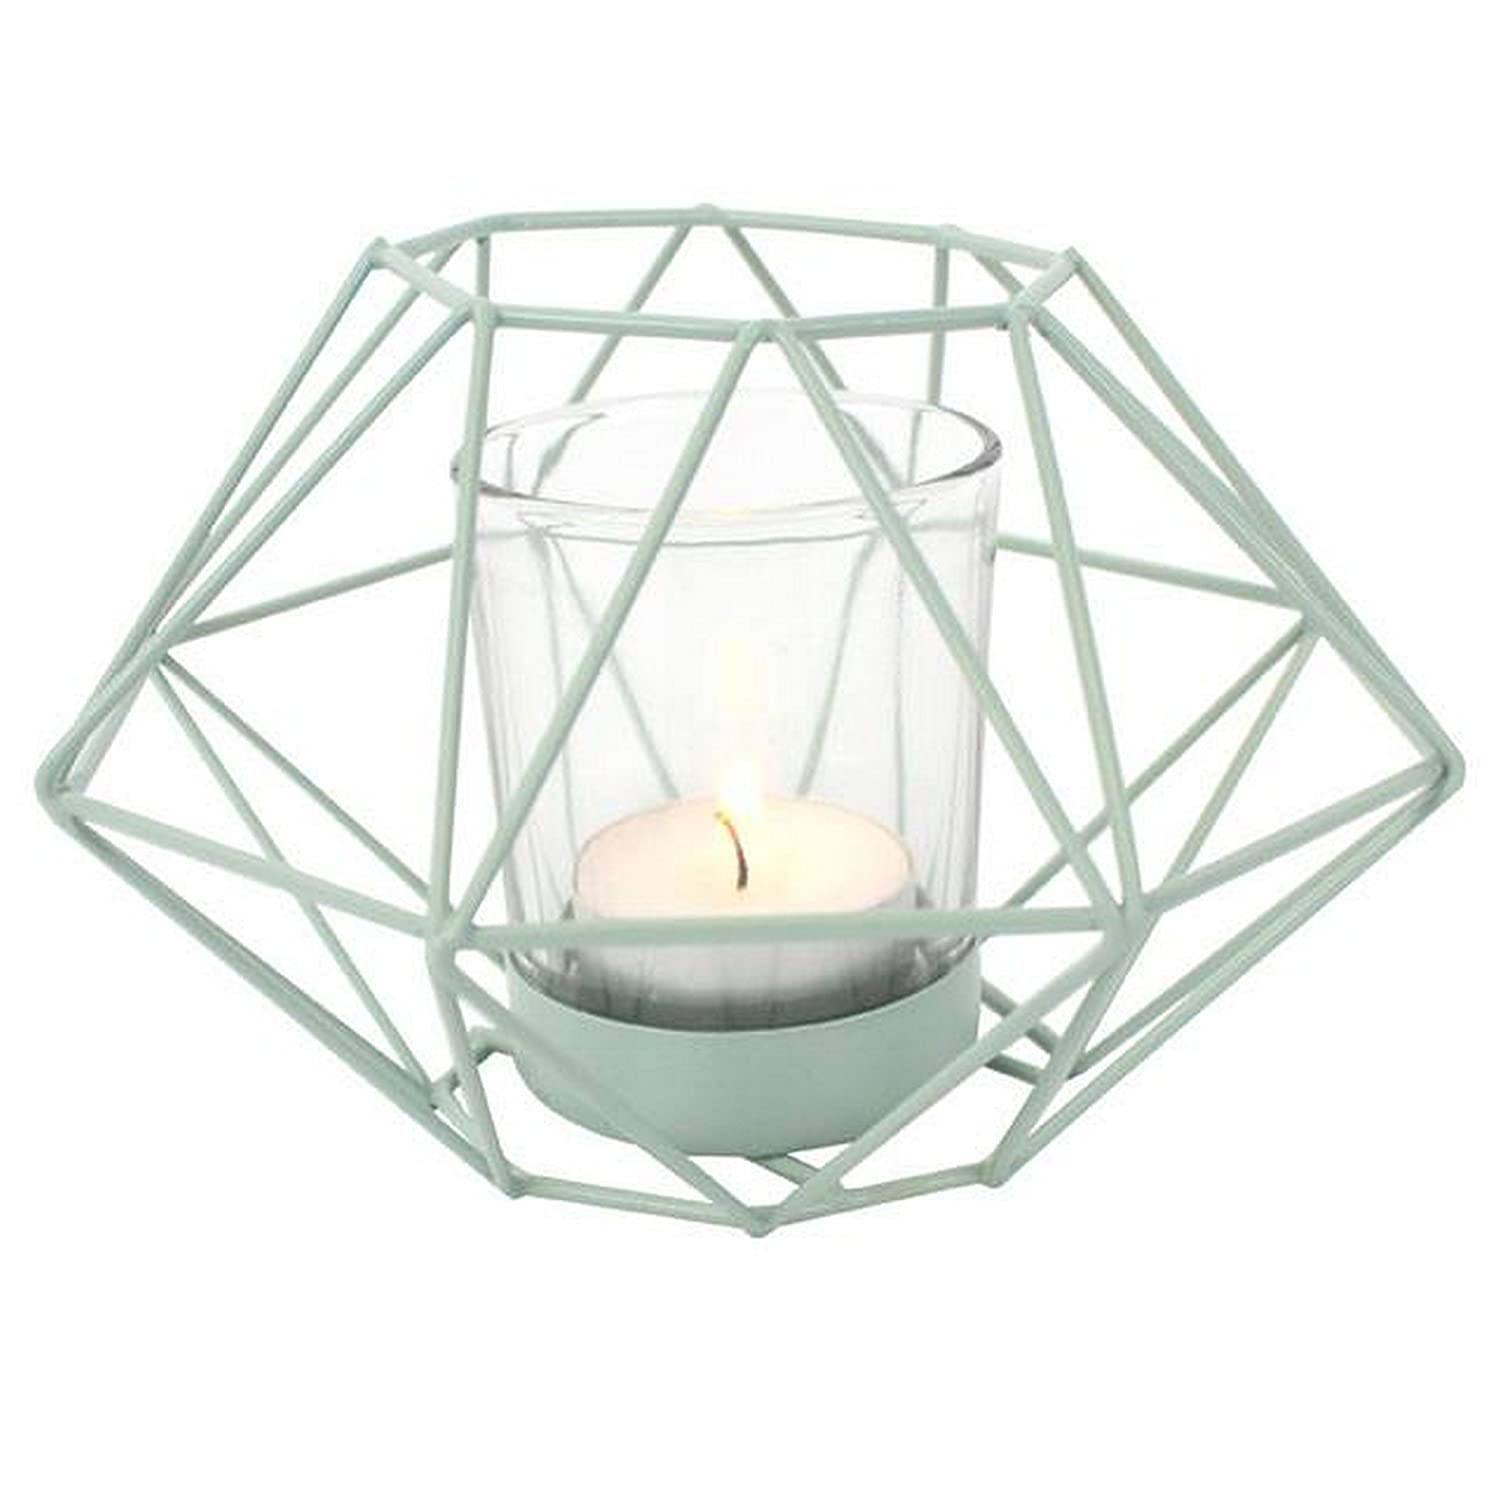 Something Different Geometric Wire Candle Holder (5.9 x 5.9 x 3.9 in) (Cream) UTSD1231_3